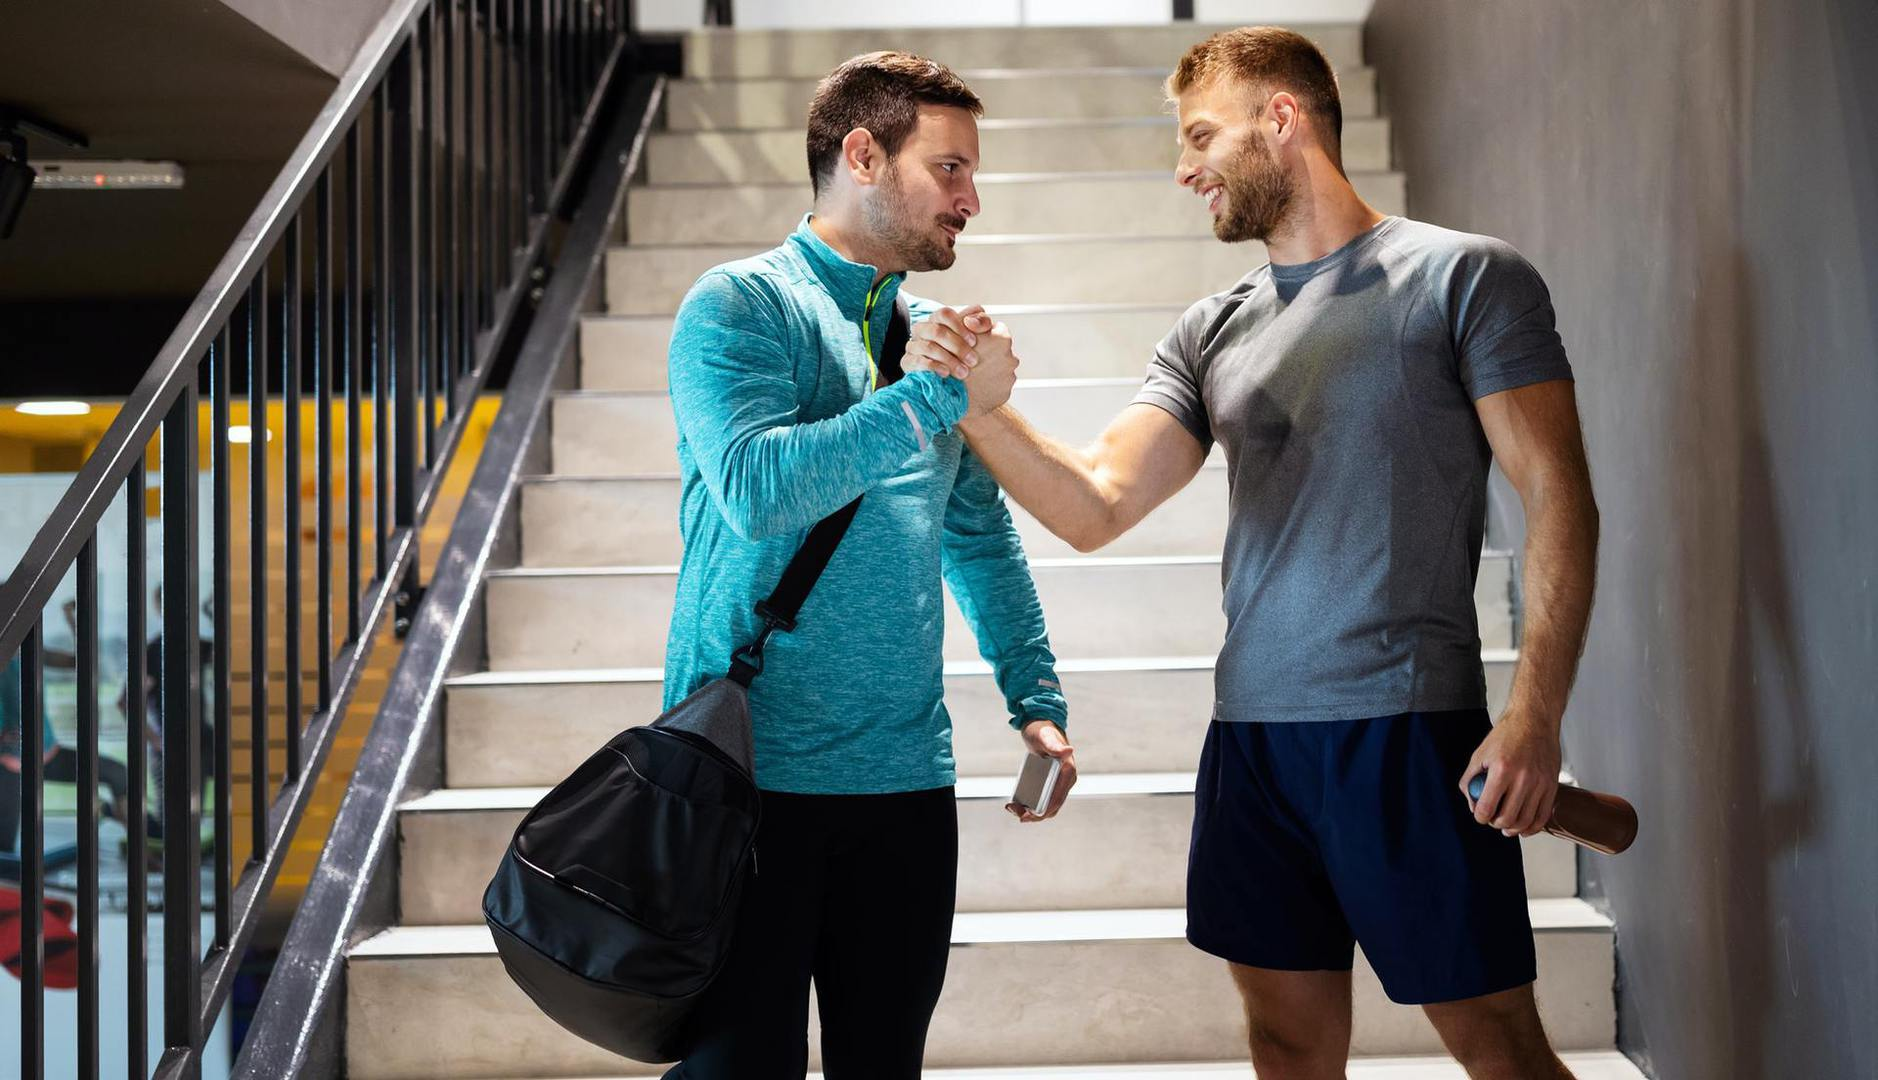 Sport, fitness, healthy lifestyle and people concept. Happy fit friends men talking after workout